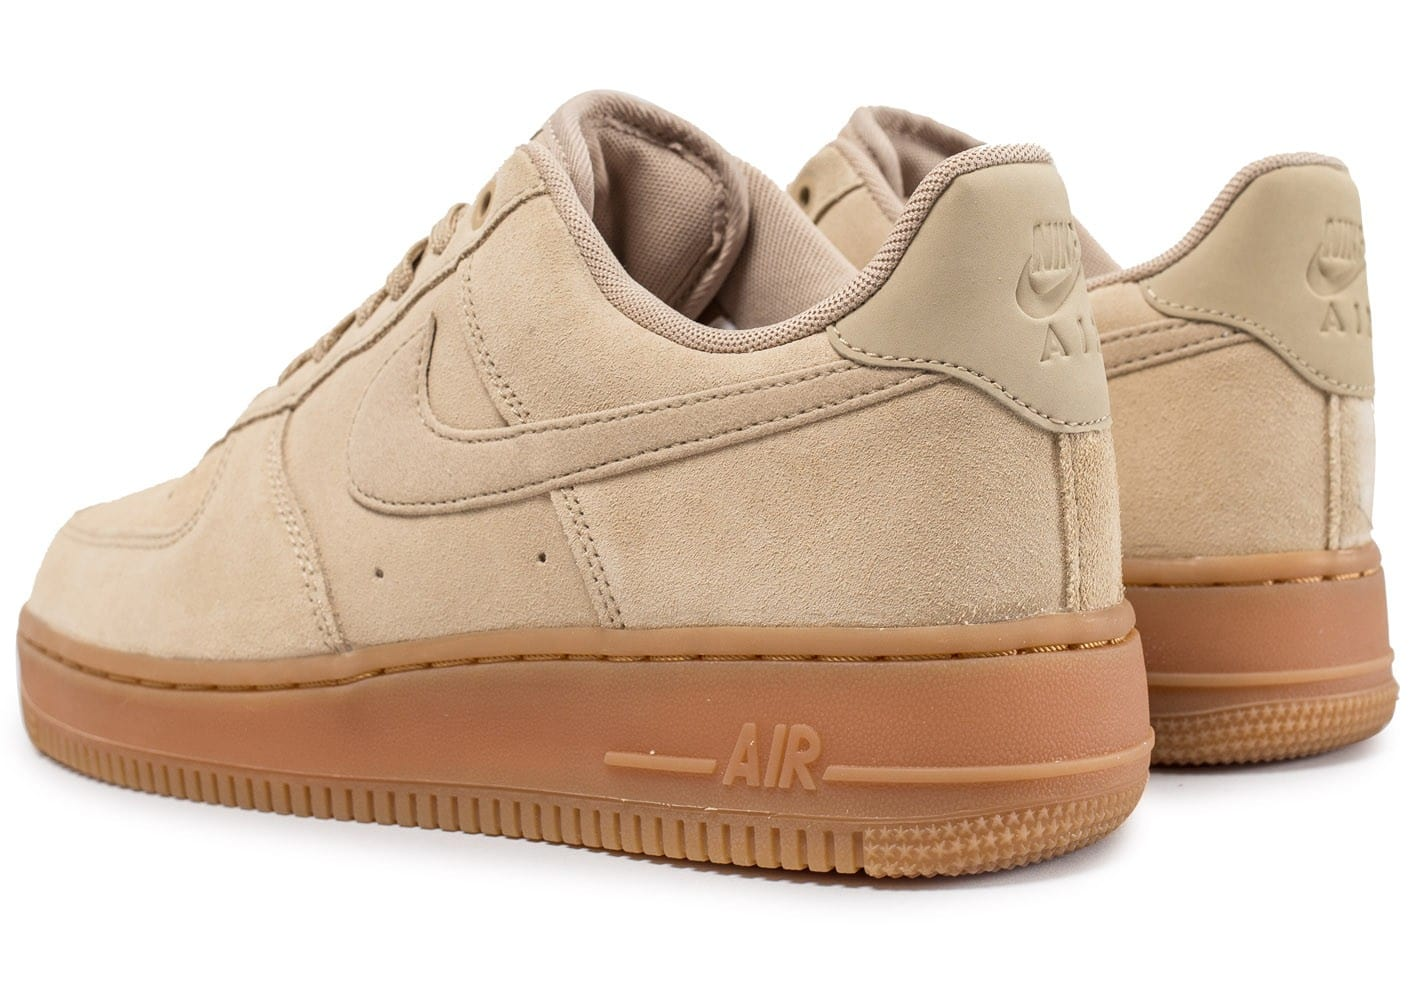 nike air force 1 39 07 lv8 beige chaussures homme chausport. Black Bedroom Furniture Sets. Home Design Ideas